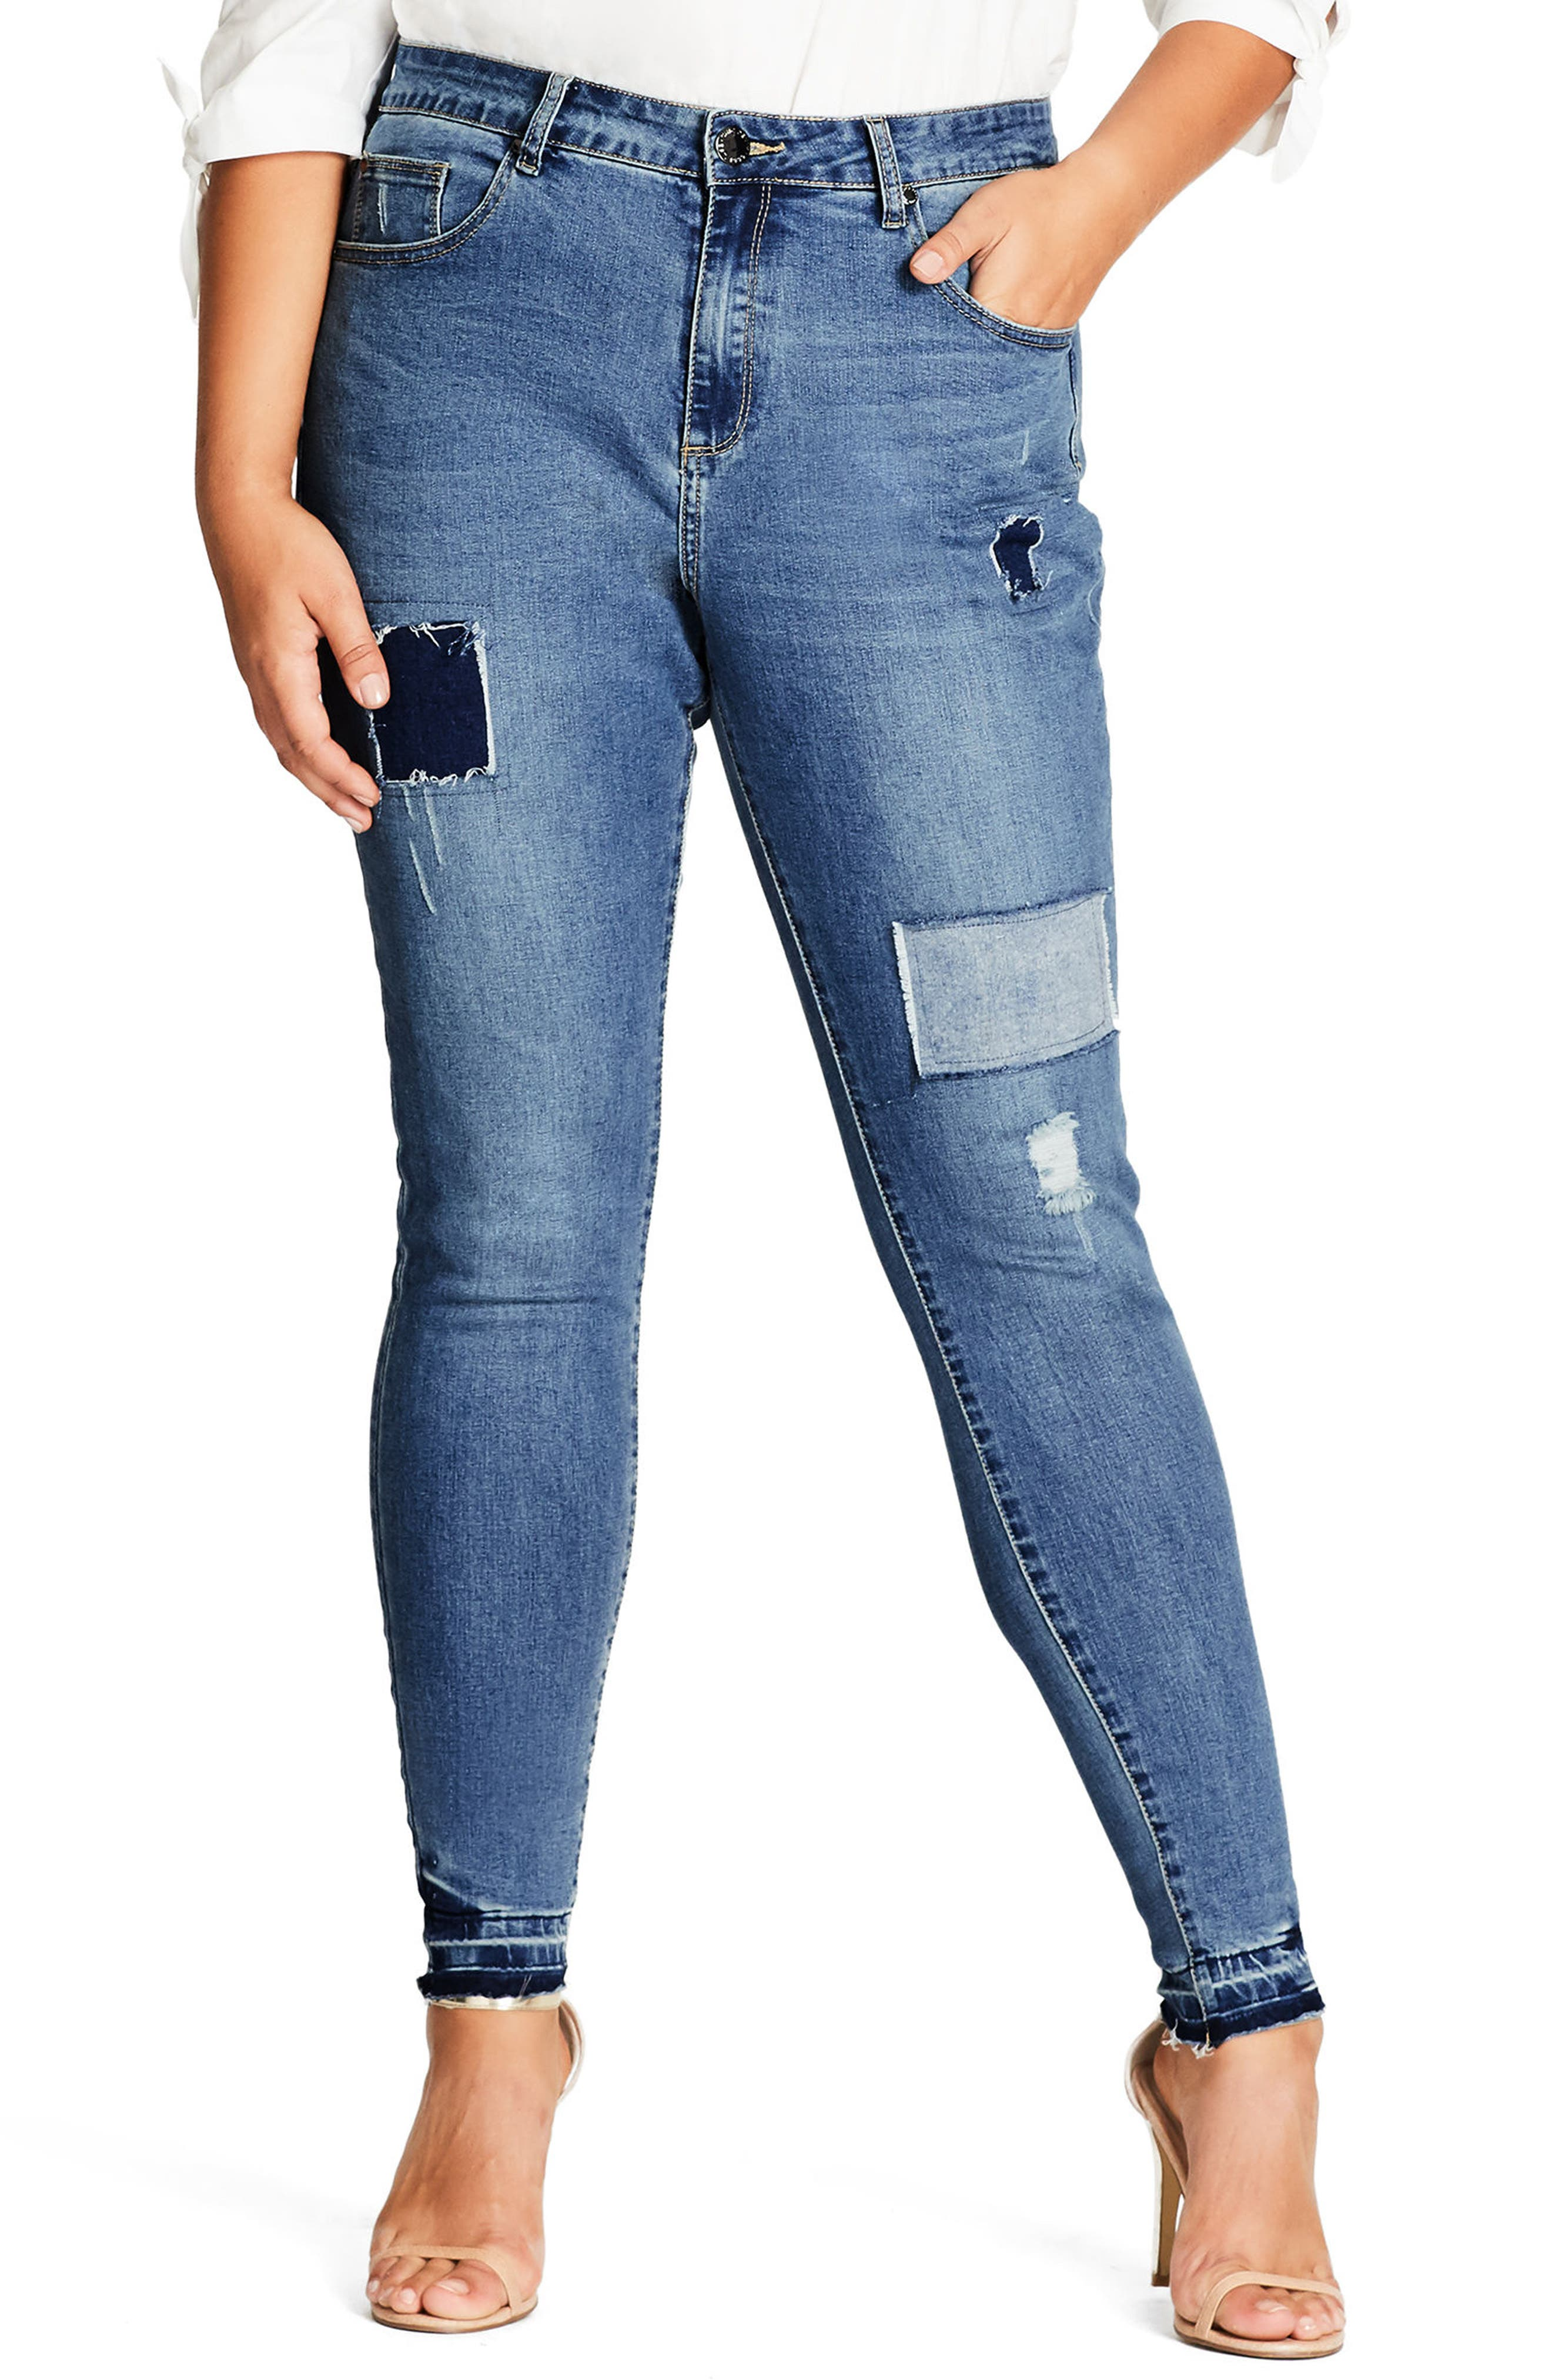 Alternate Image 1 Selected - City Chic Patched Released Hem Skinny Jeans (Plus Size)